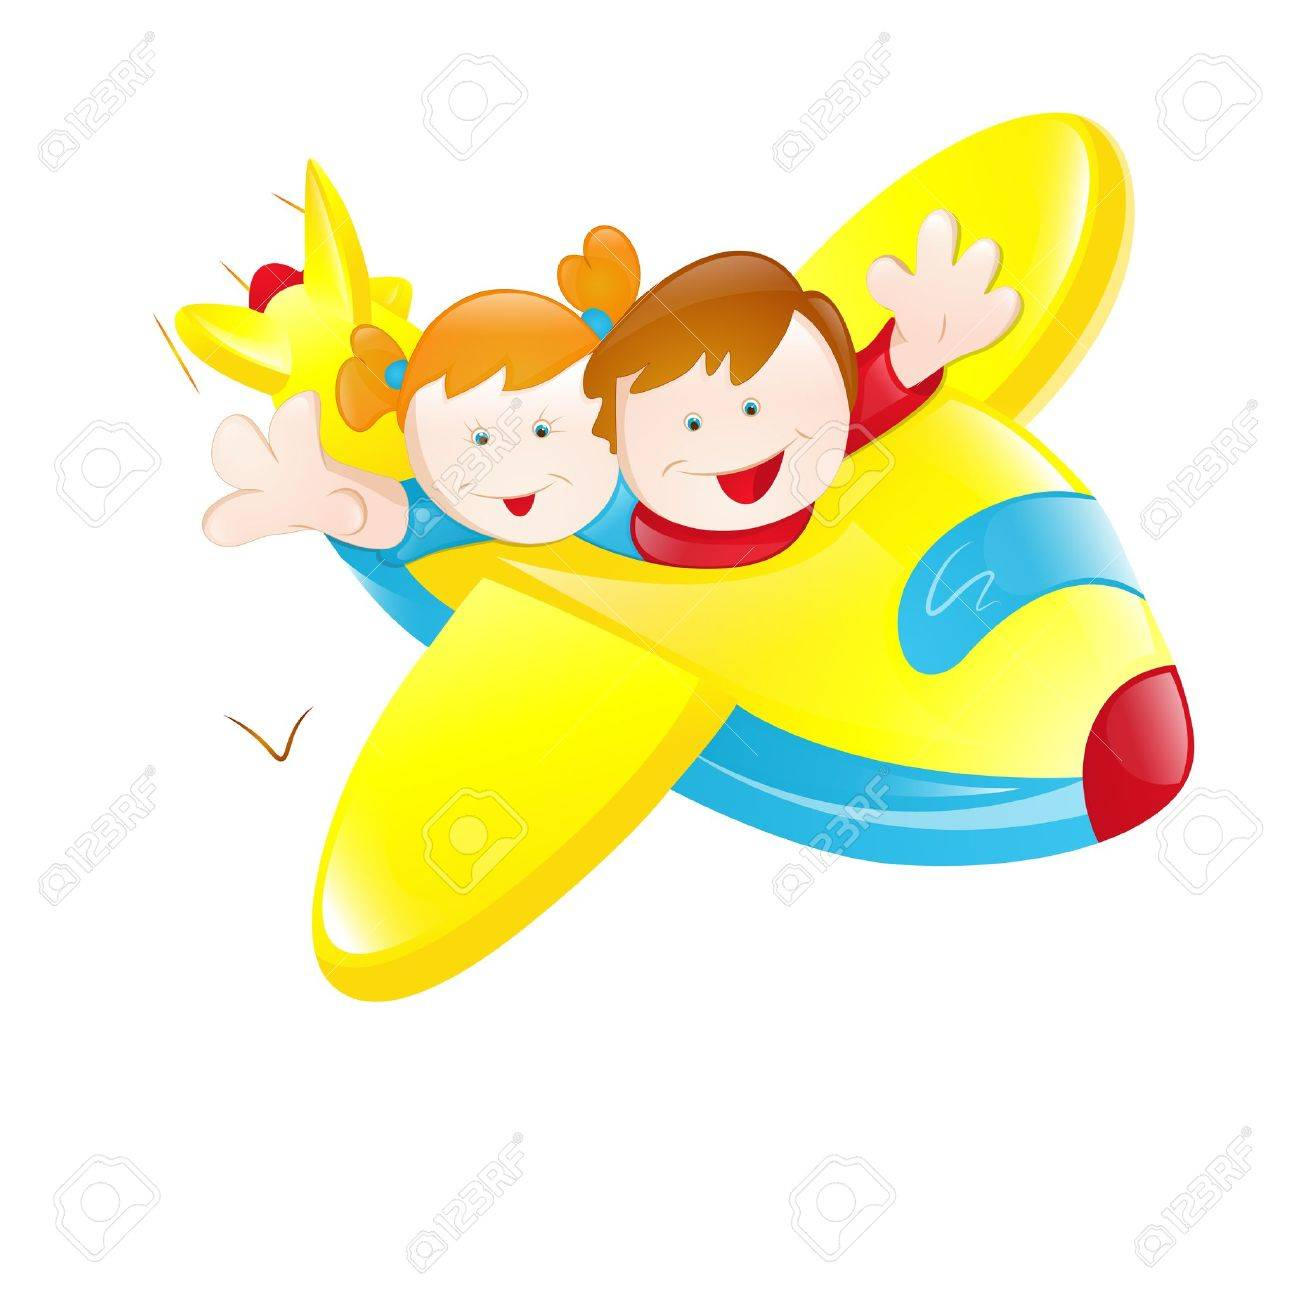 Kids Flying Plane Royalty Free Cliparts Vectors And Stock